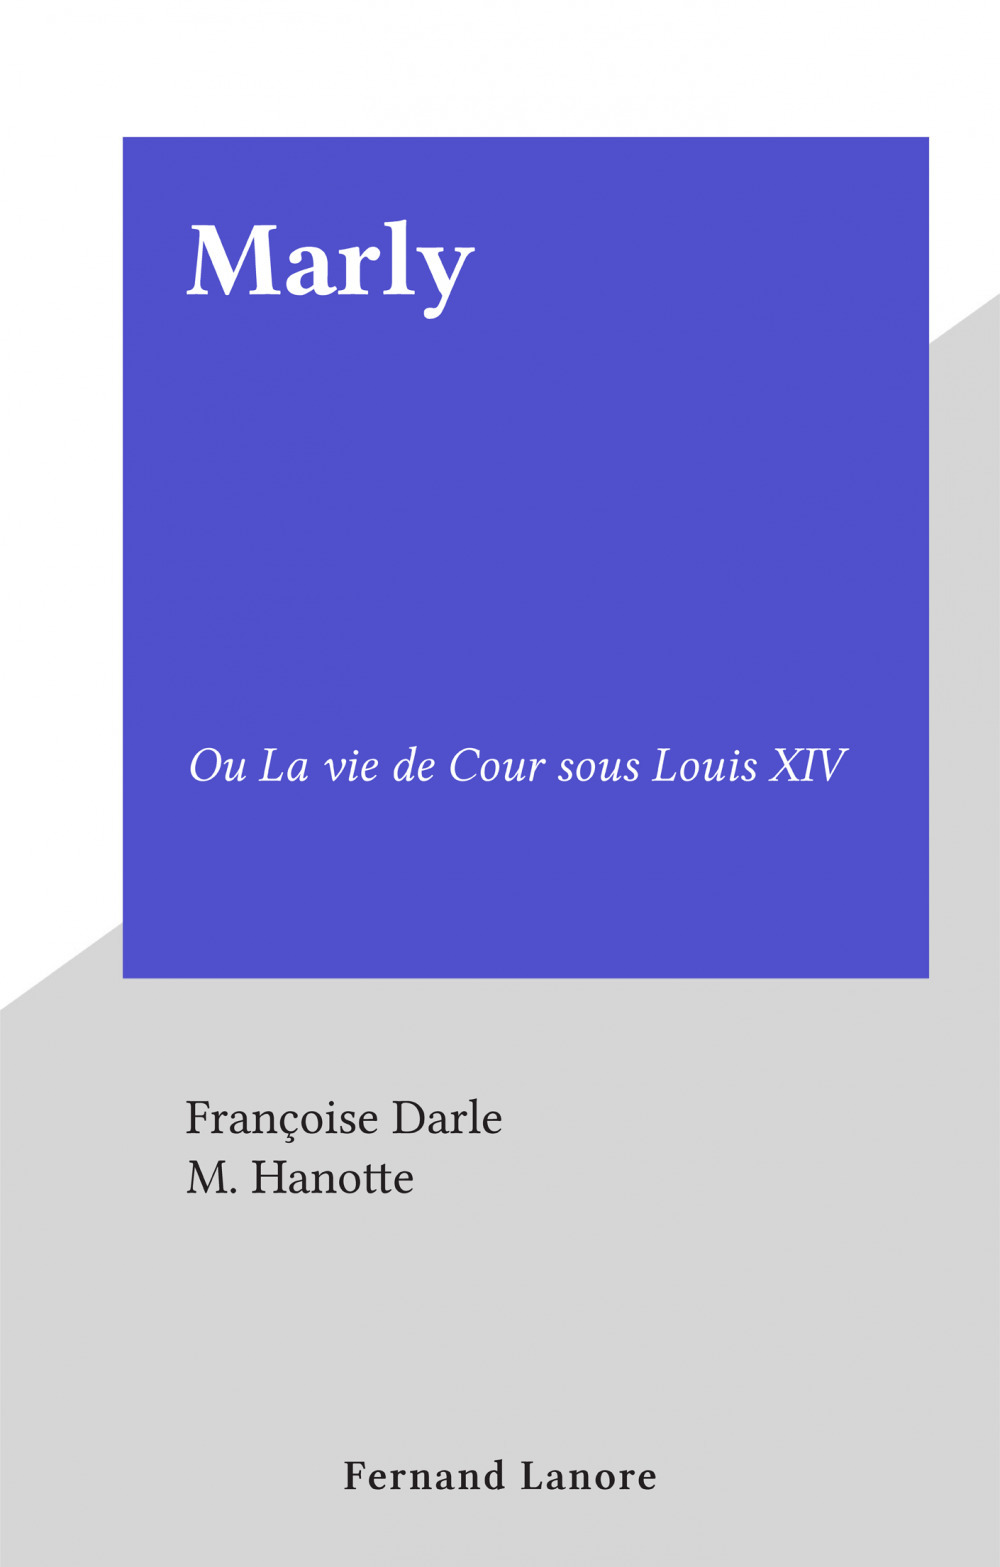 Marly  - Françoise Darle